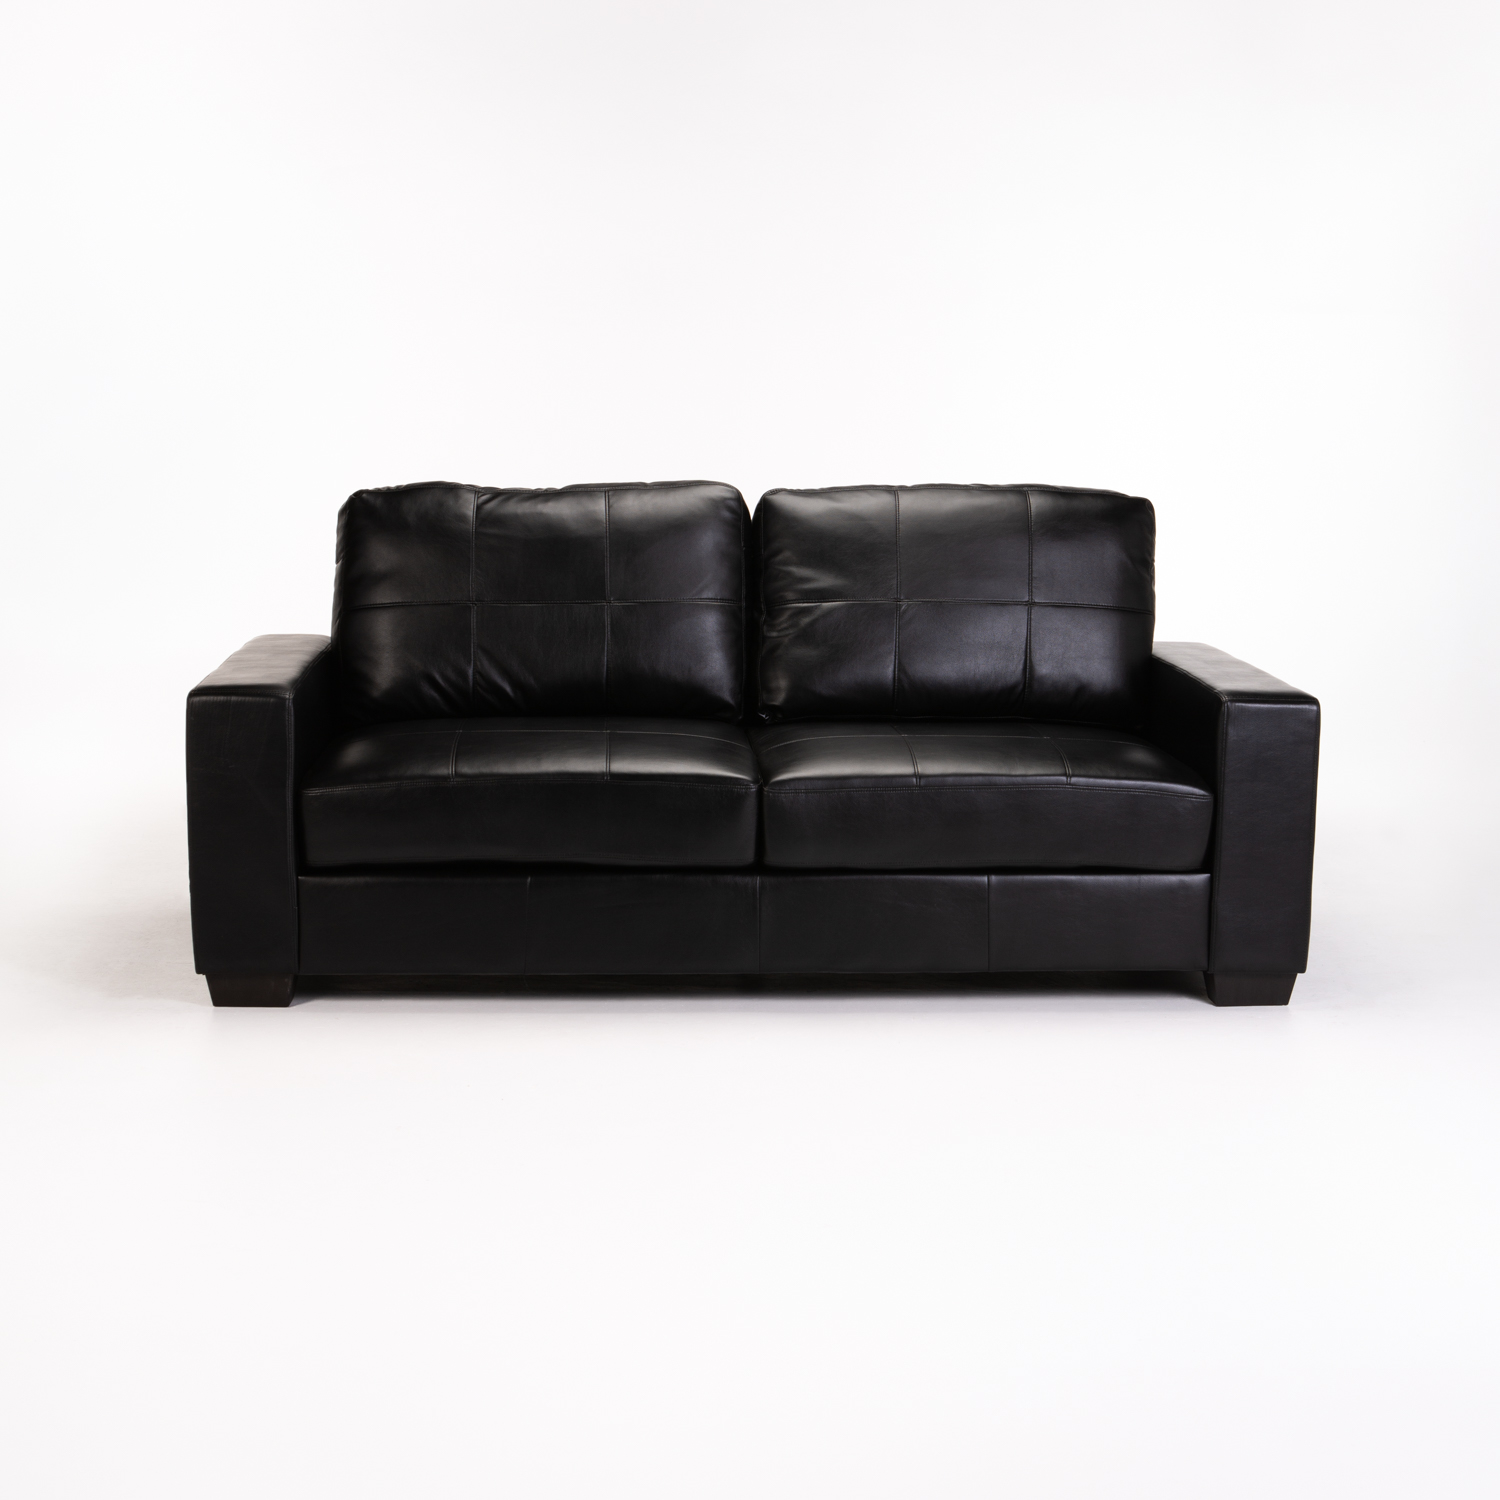 GINA LEATHER AIR 3 SEATER